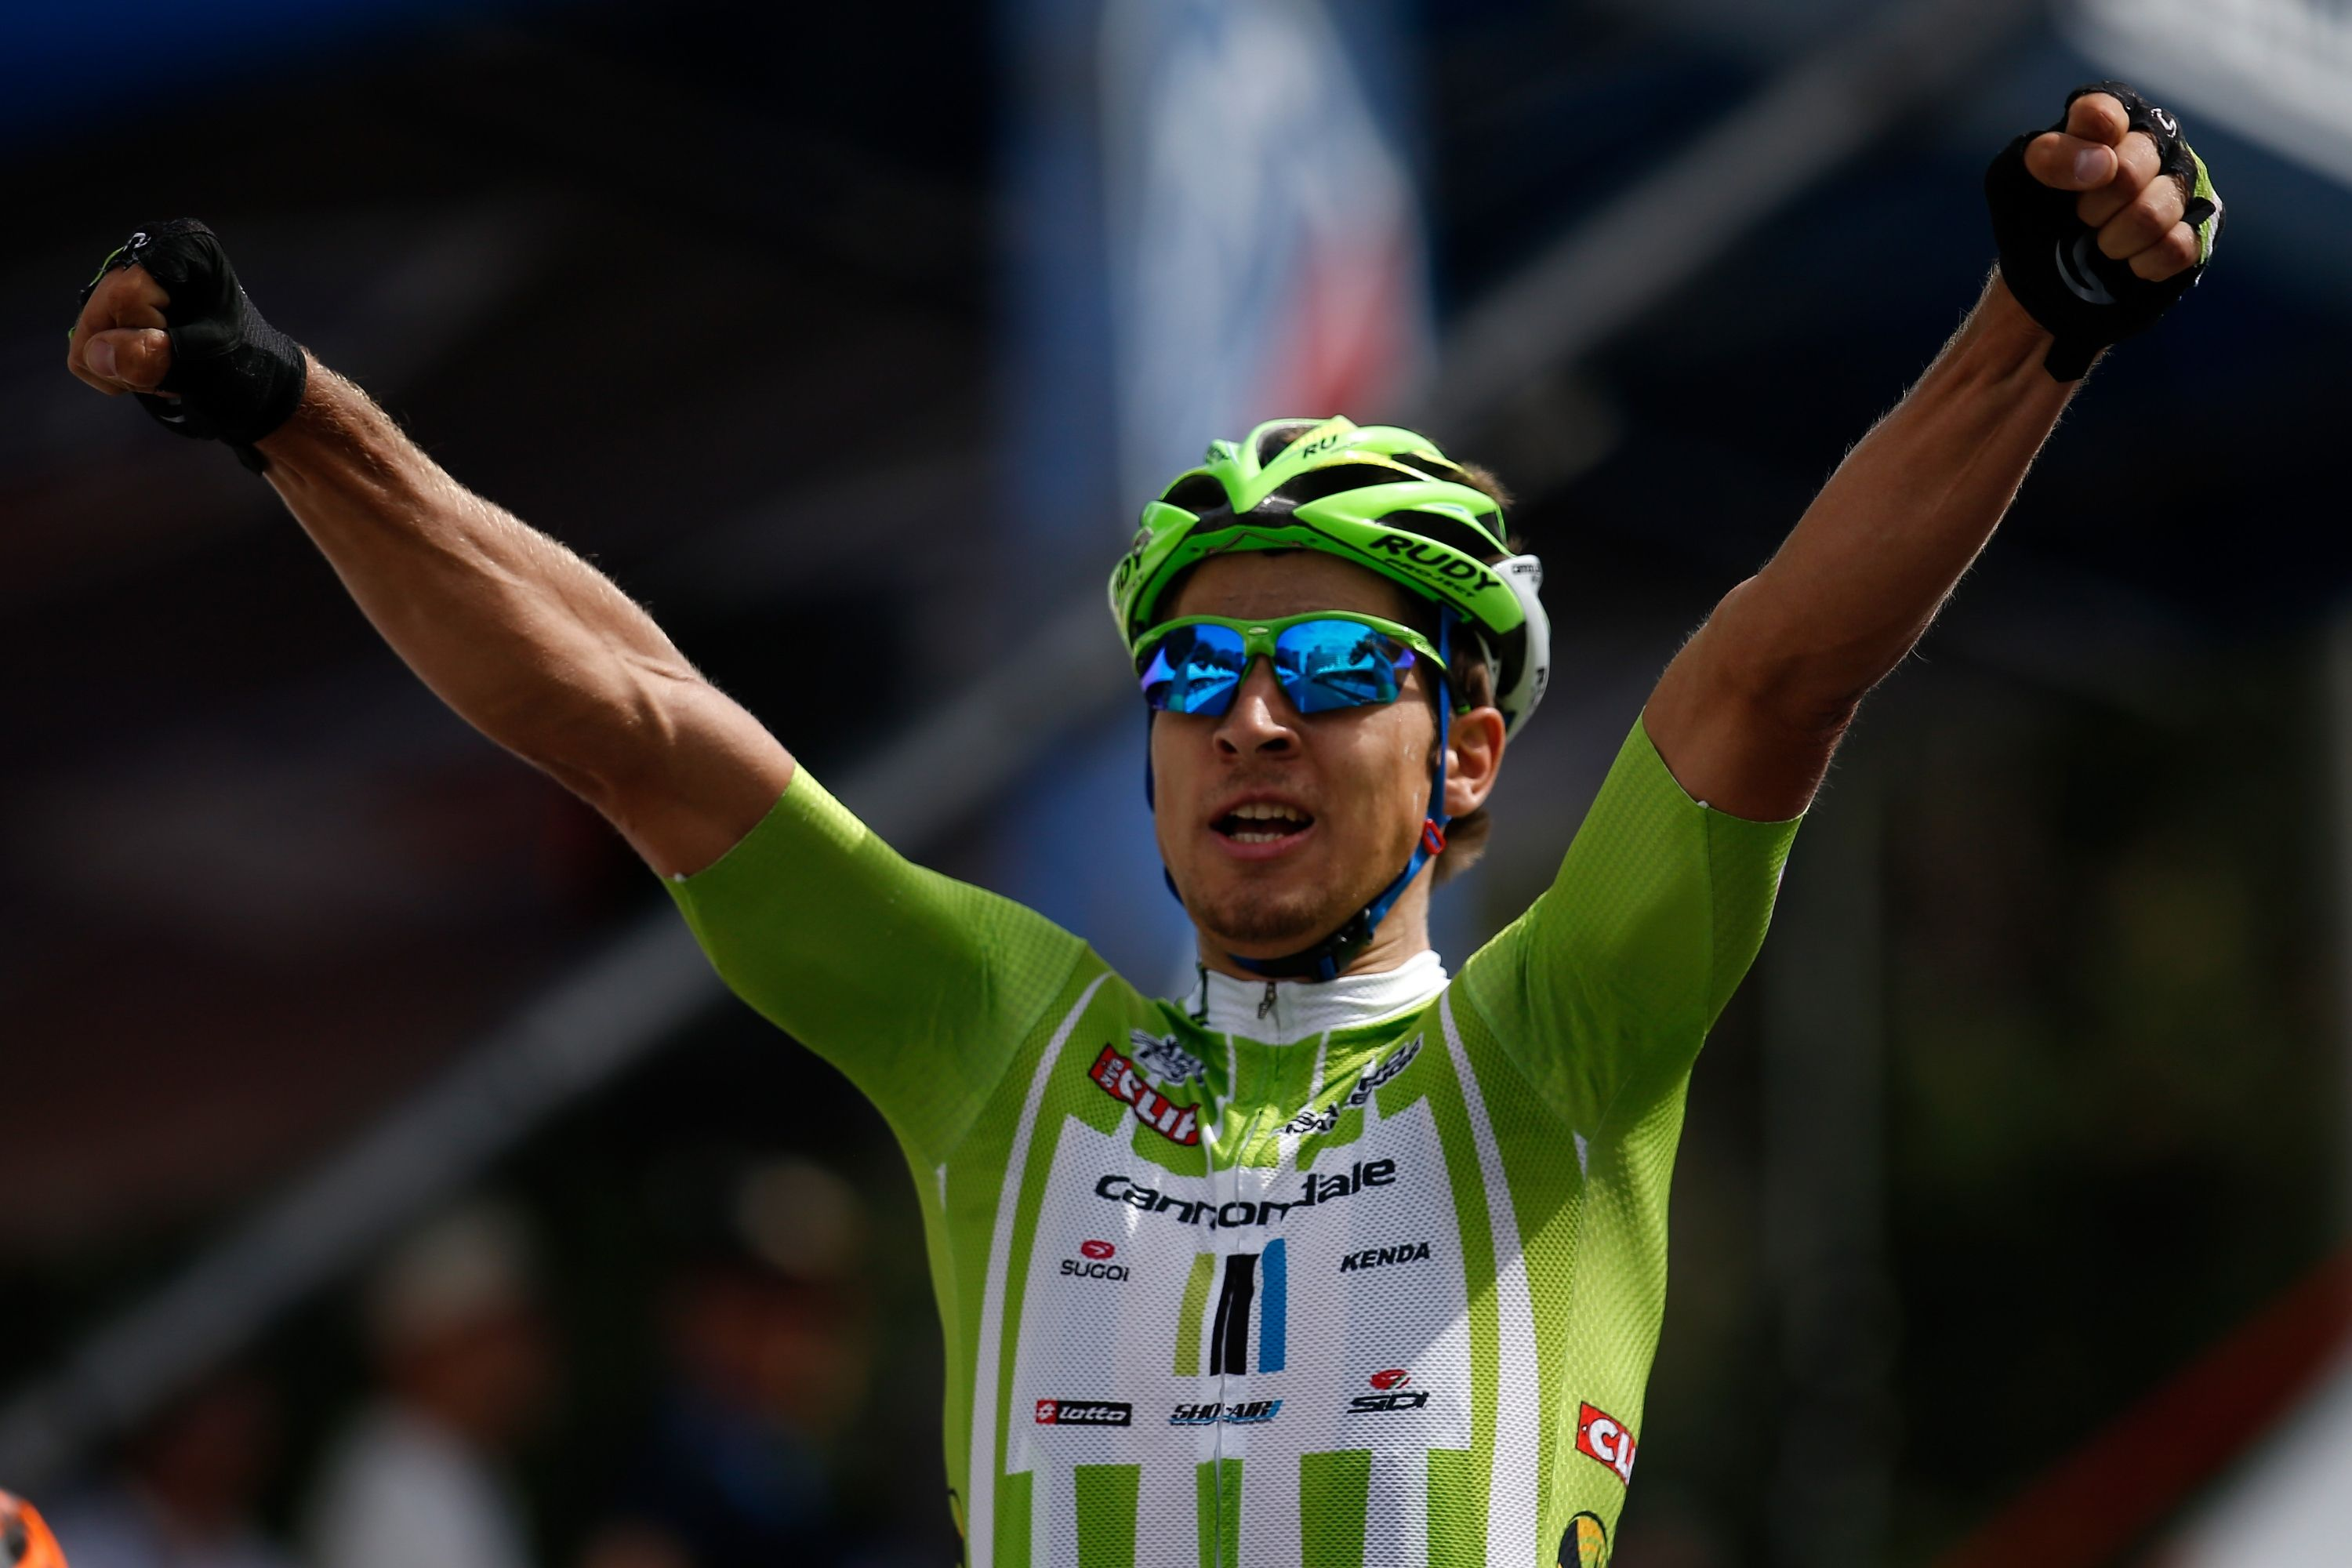 DENVER, CO - AUGUST 25: Peter Sagan of Slovakia and Cannondale Pro Cycling crosses the finish line to win stage seven of the 2013 USA Pro Challenge on August 25, 2013 in Denver, Colorado. (Photo by Chris Graythen/Getty Images)